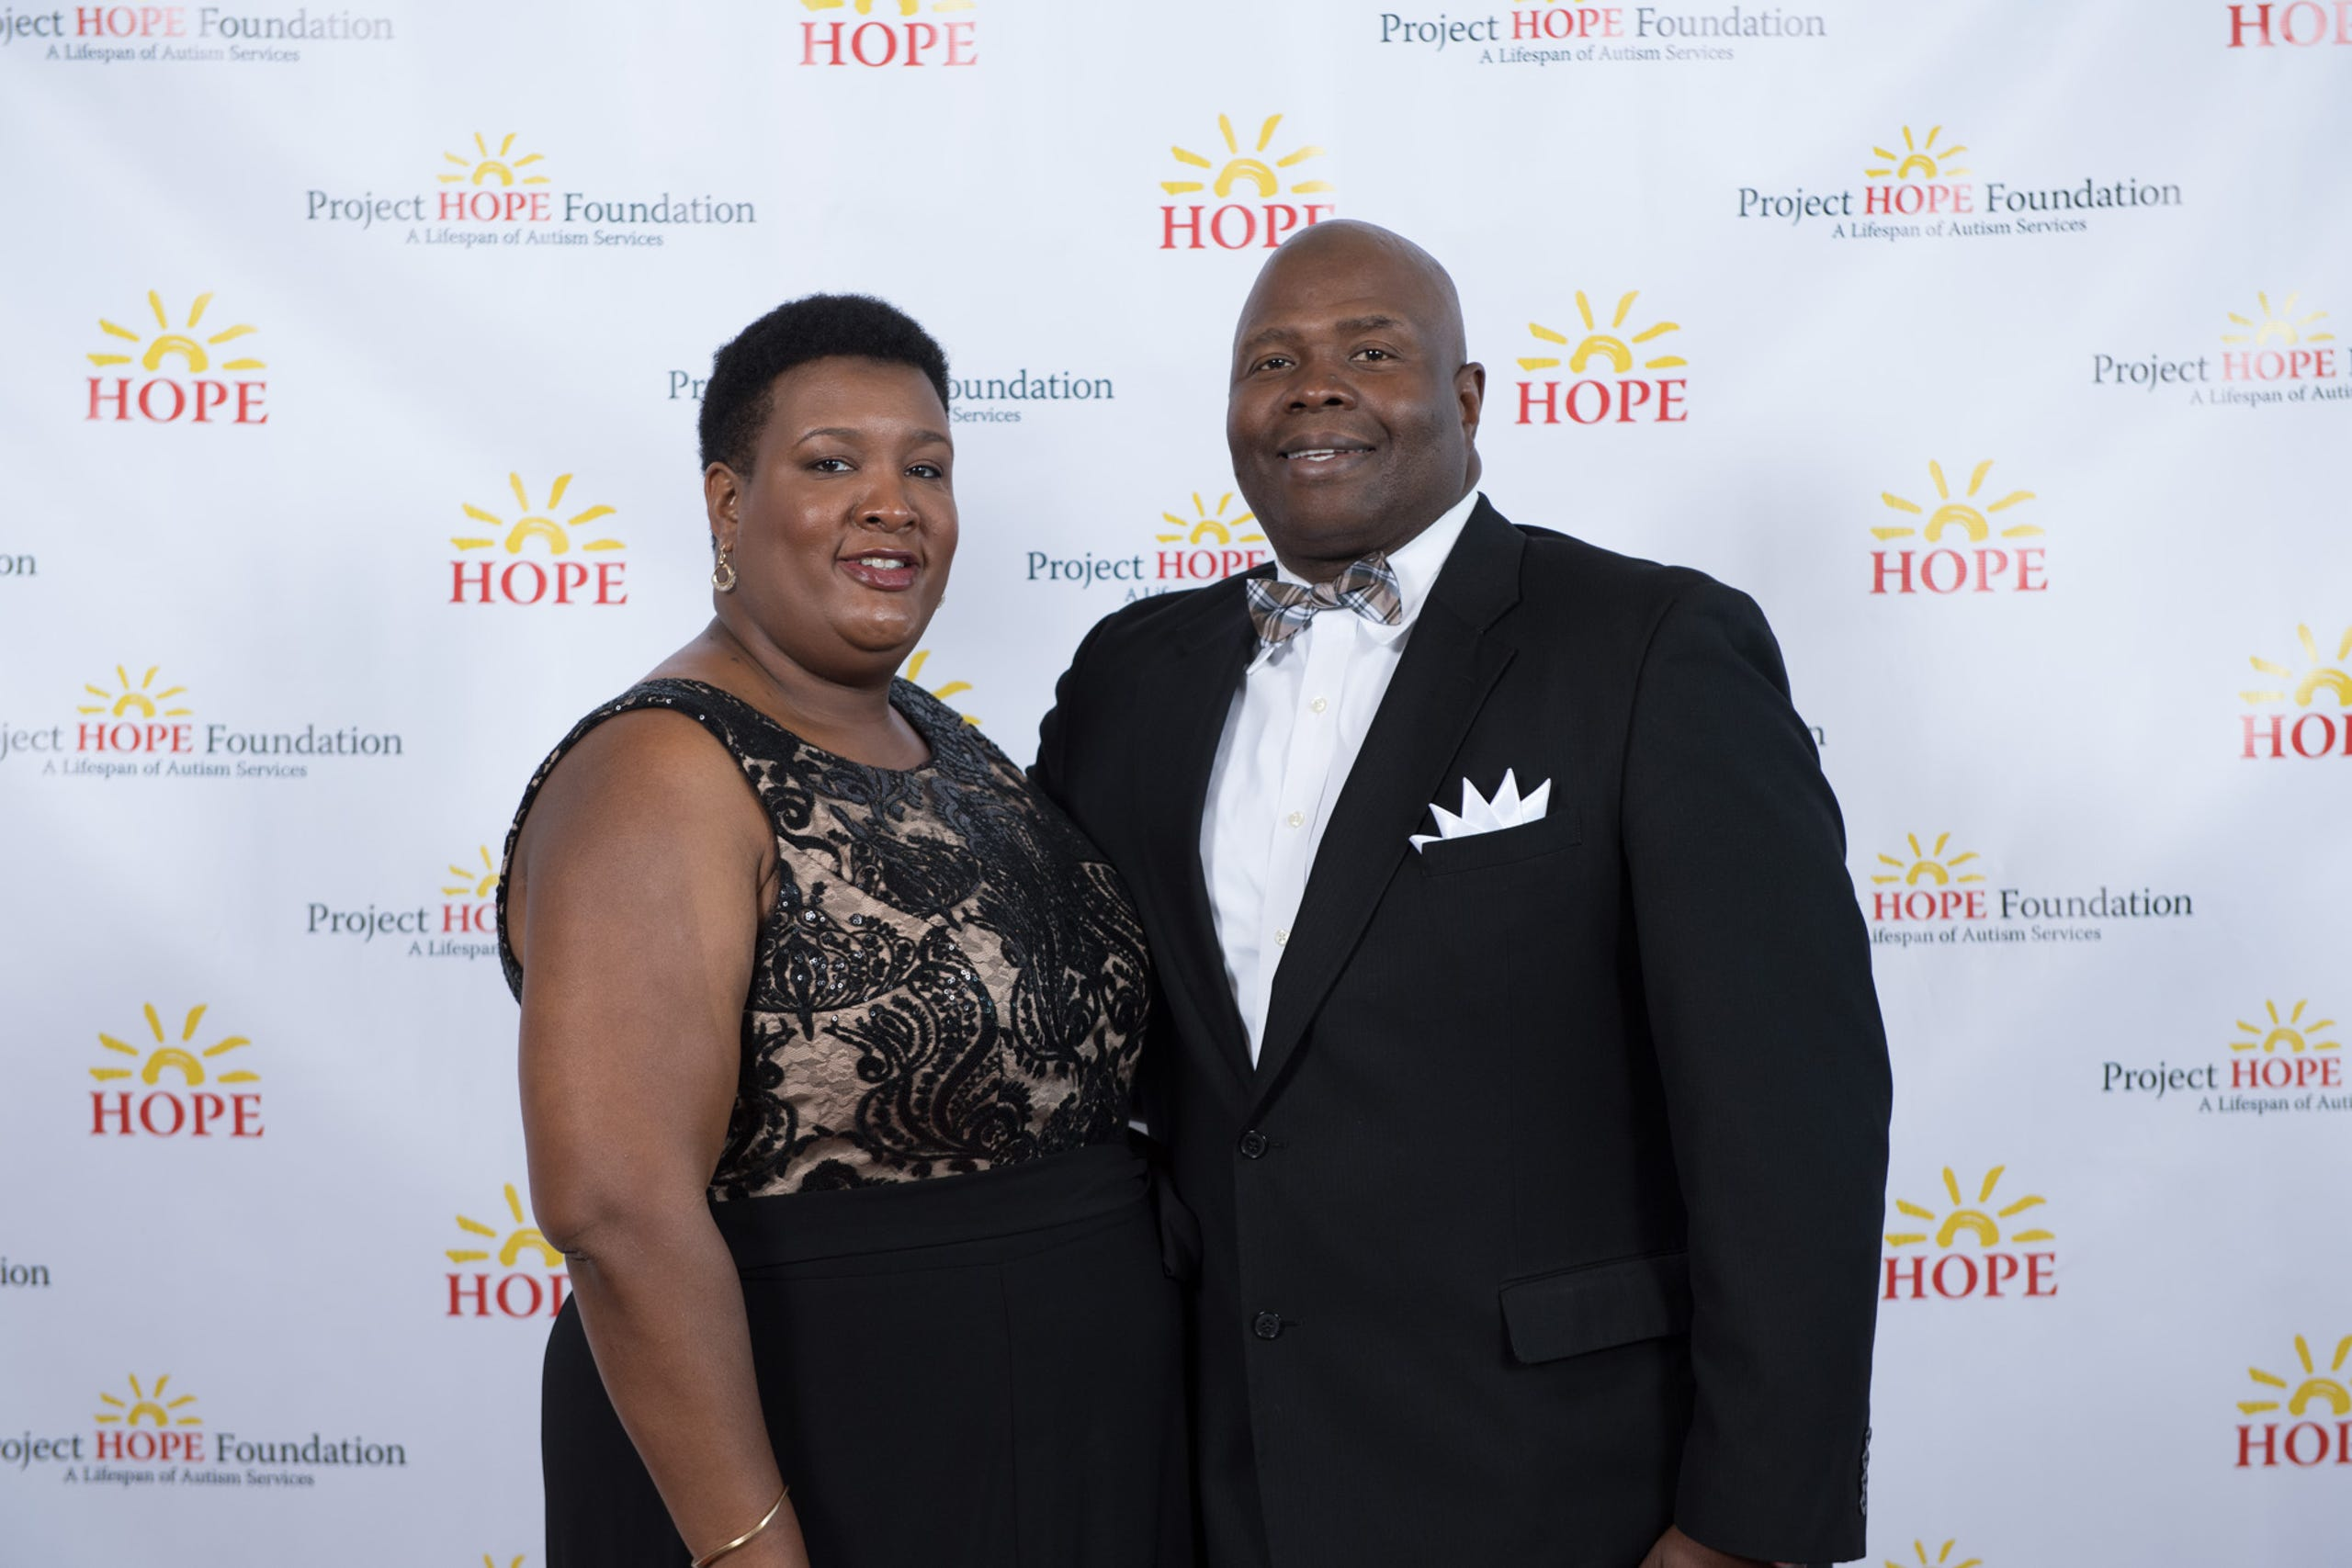 Evening of HOPE Gala at TD Convention Center promotes